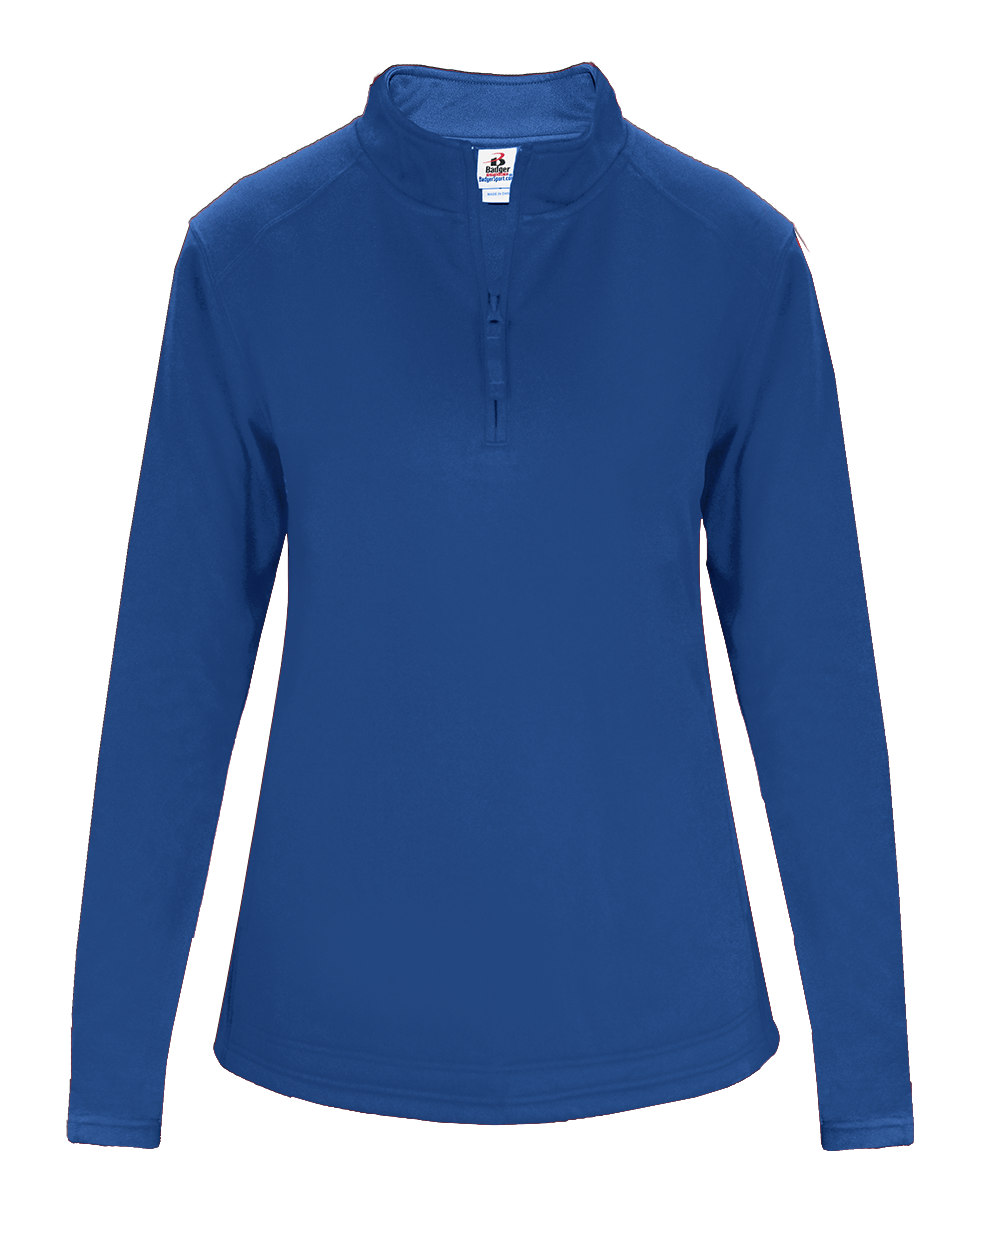 Perf. Fleece Women's 1/ 4 Zip - Royal